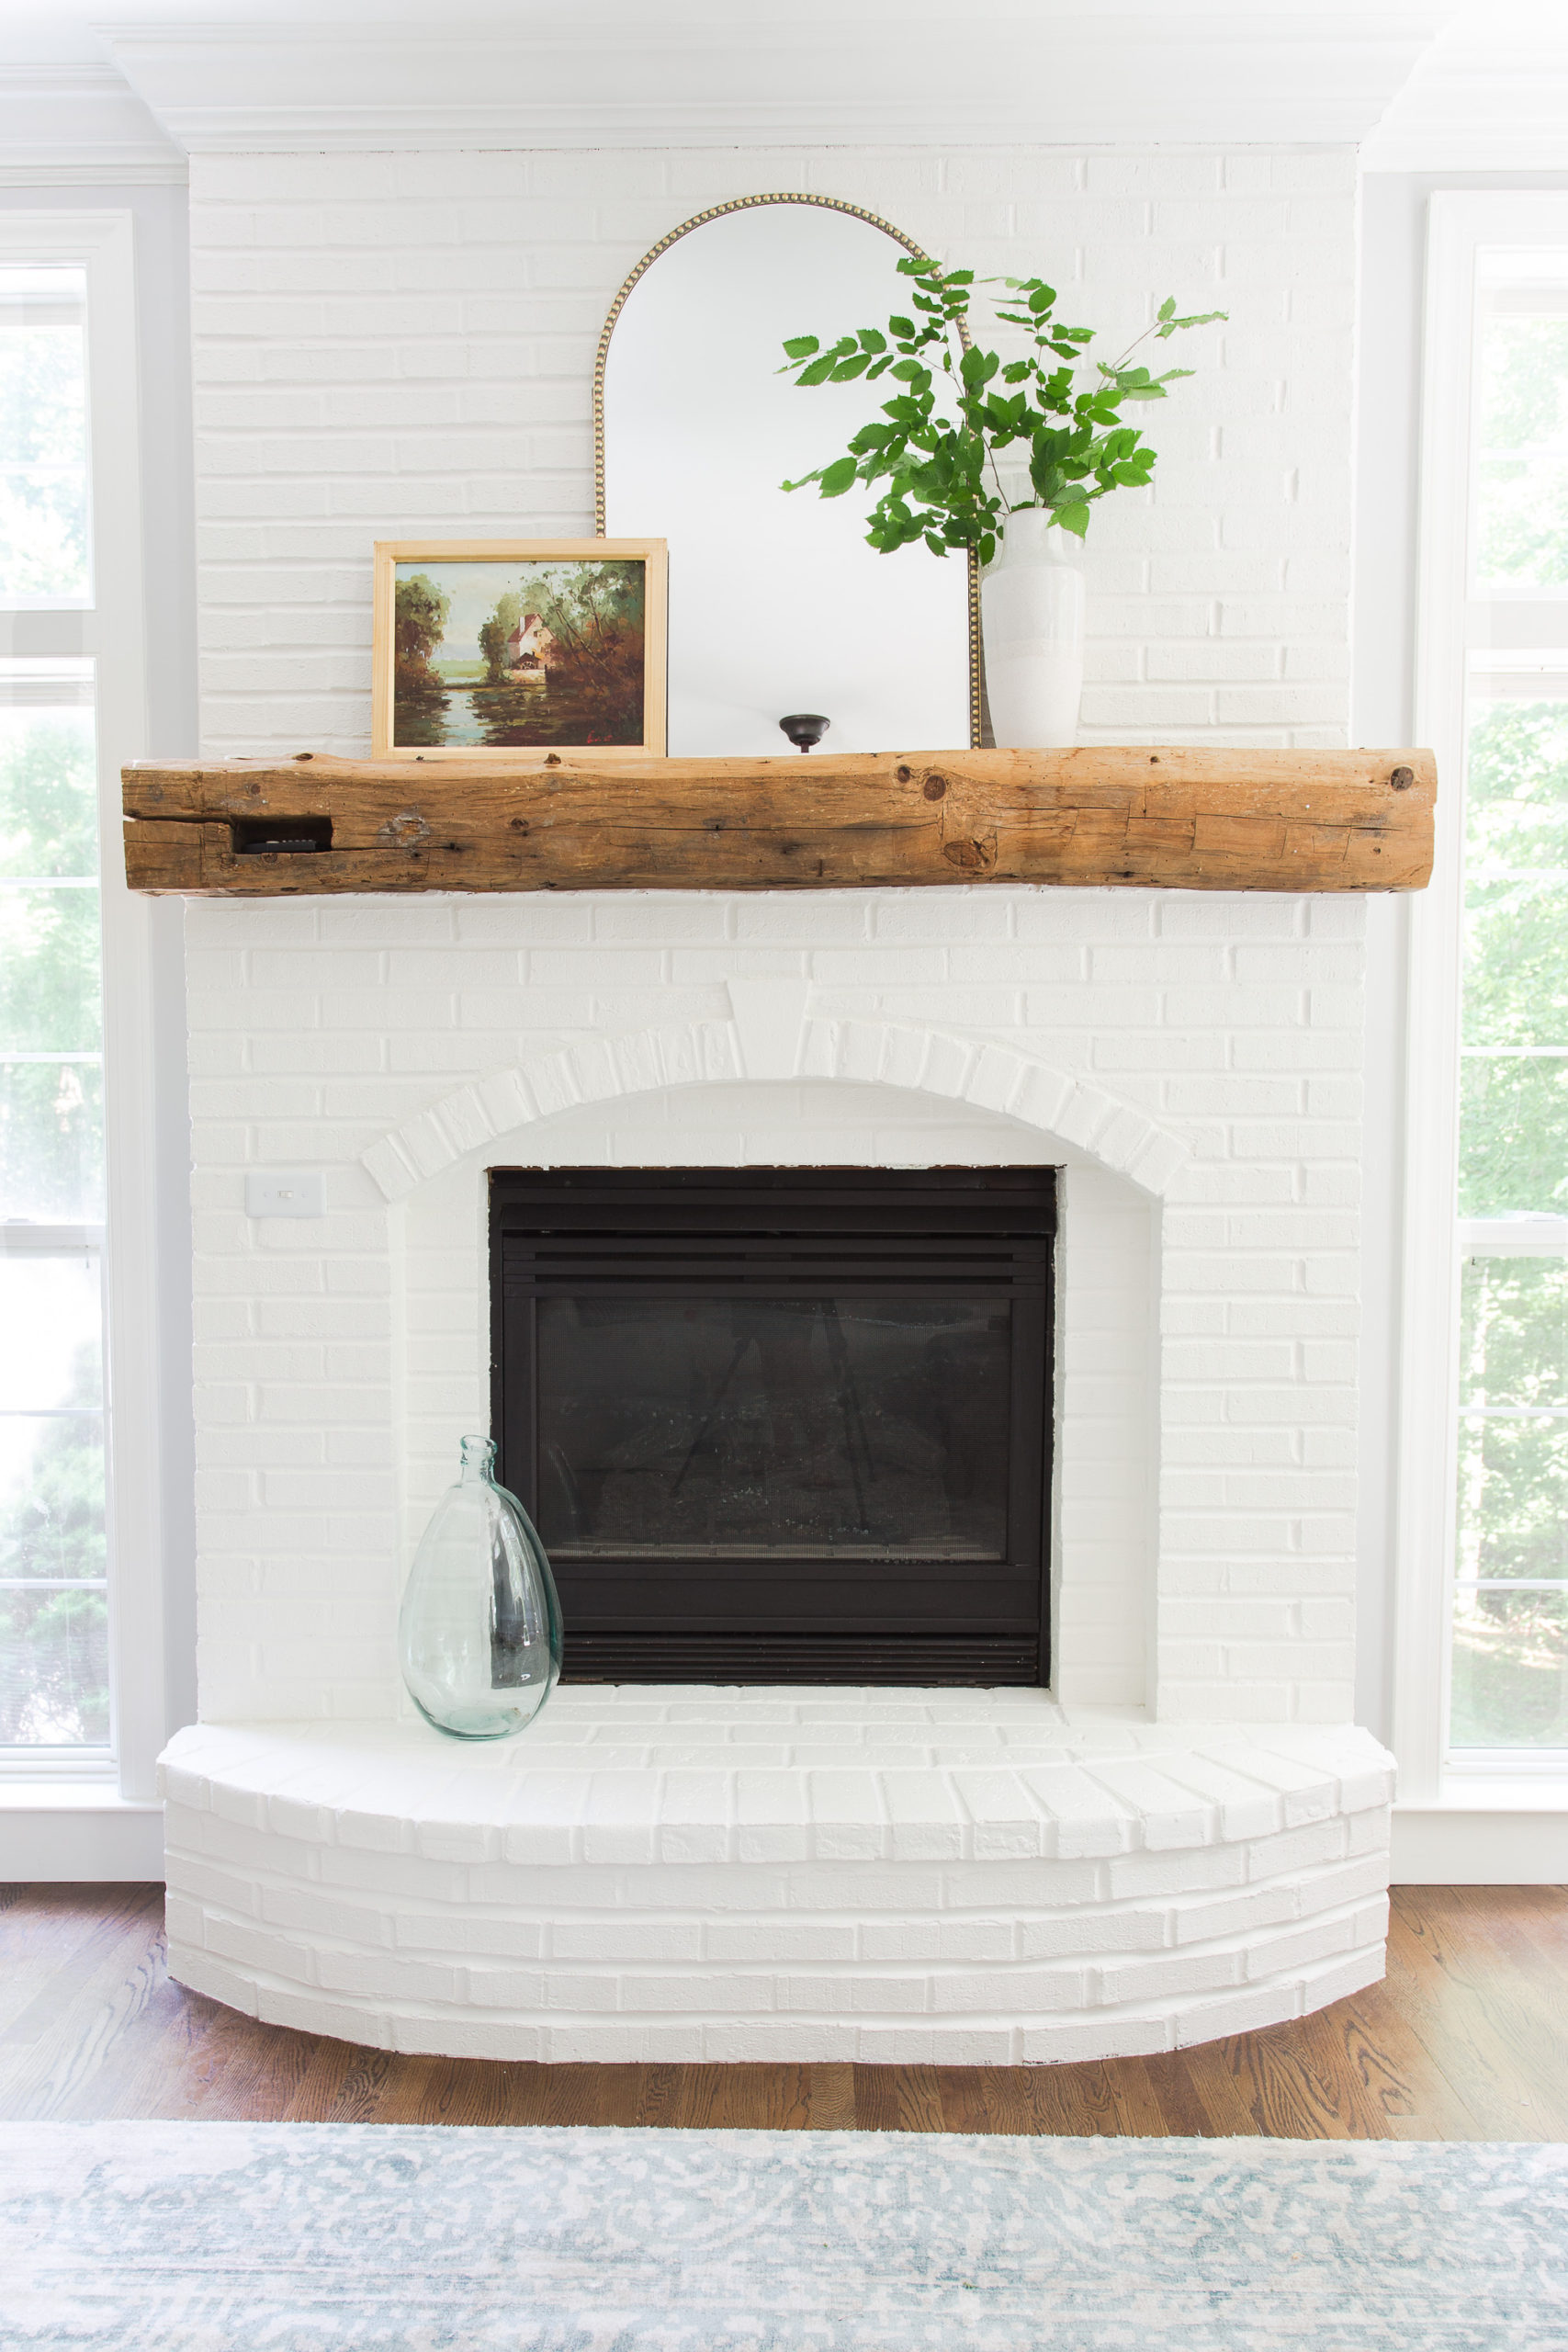 White brick fireplace with wood mantel and gold arched mirror